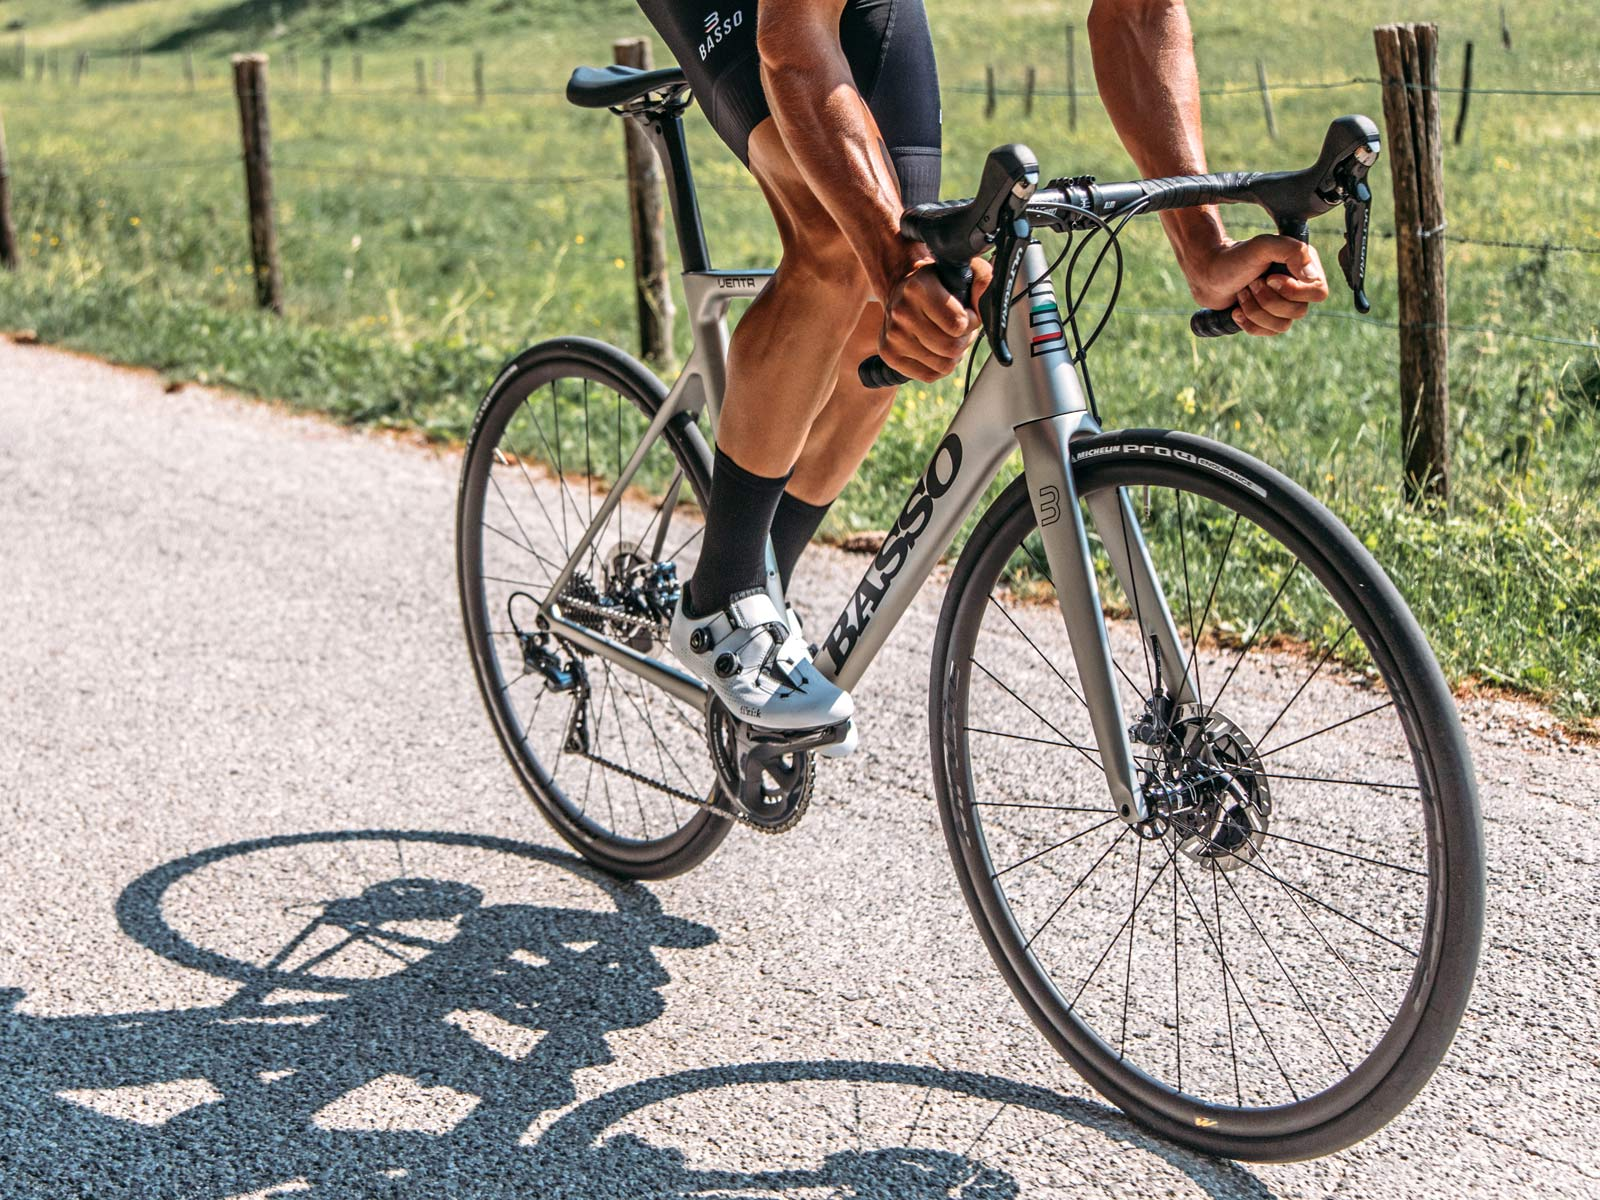 2020 Basso Venta carbon road bike, affordable Made-in-Italy, 20th anniversary Venti all-rounder Italian carbon road bike